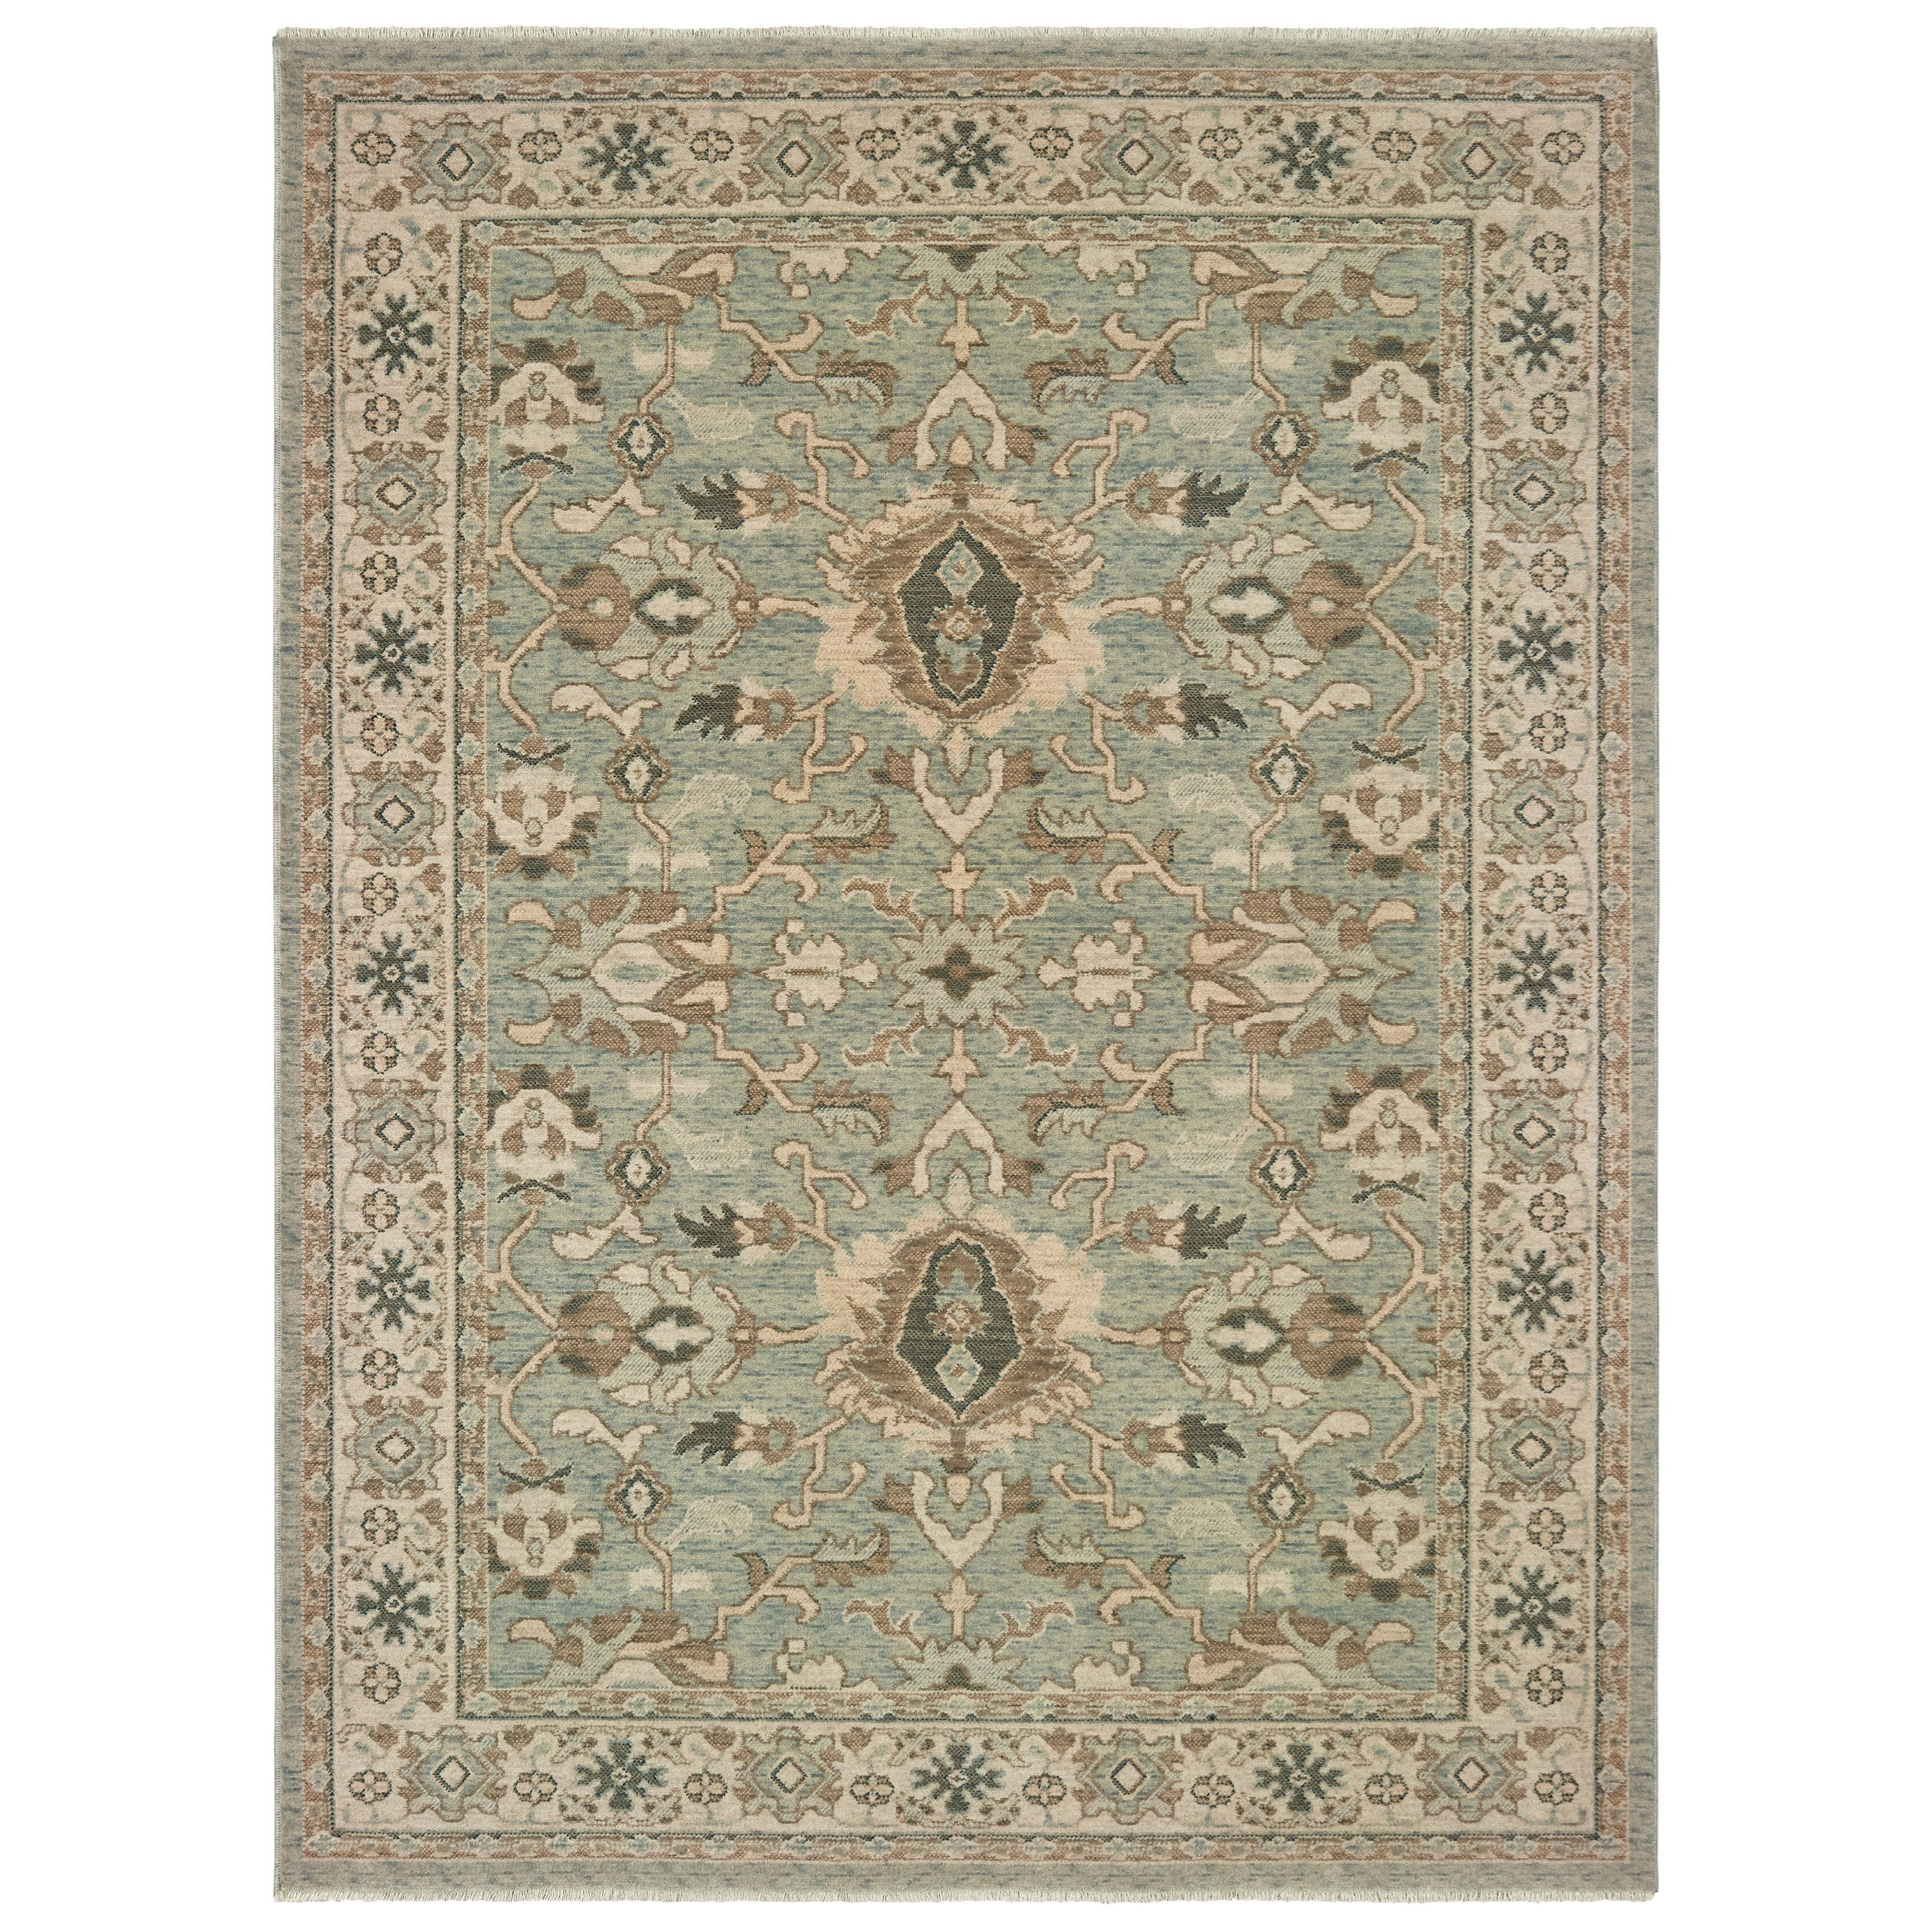 "Anatolia 7'10"" X 10'10"" Rectangle Rug by Oriental Weavers at Steger's Furniture"